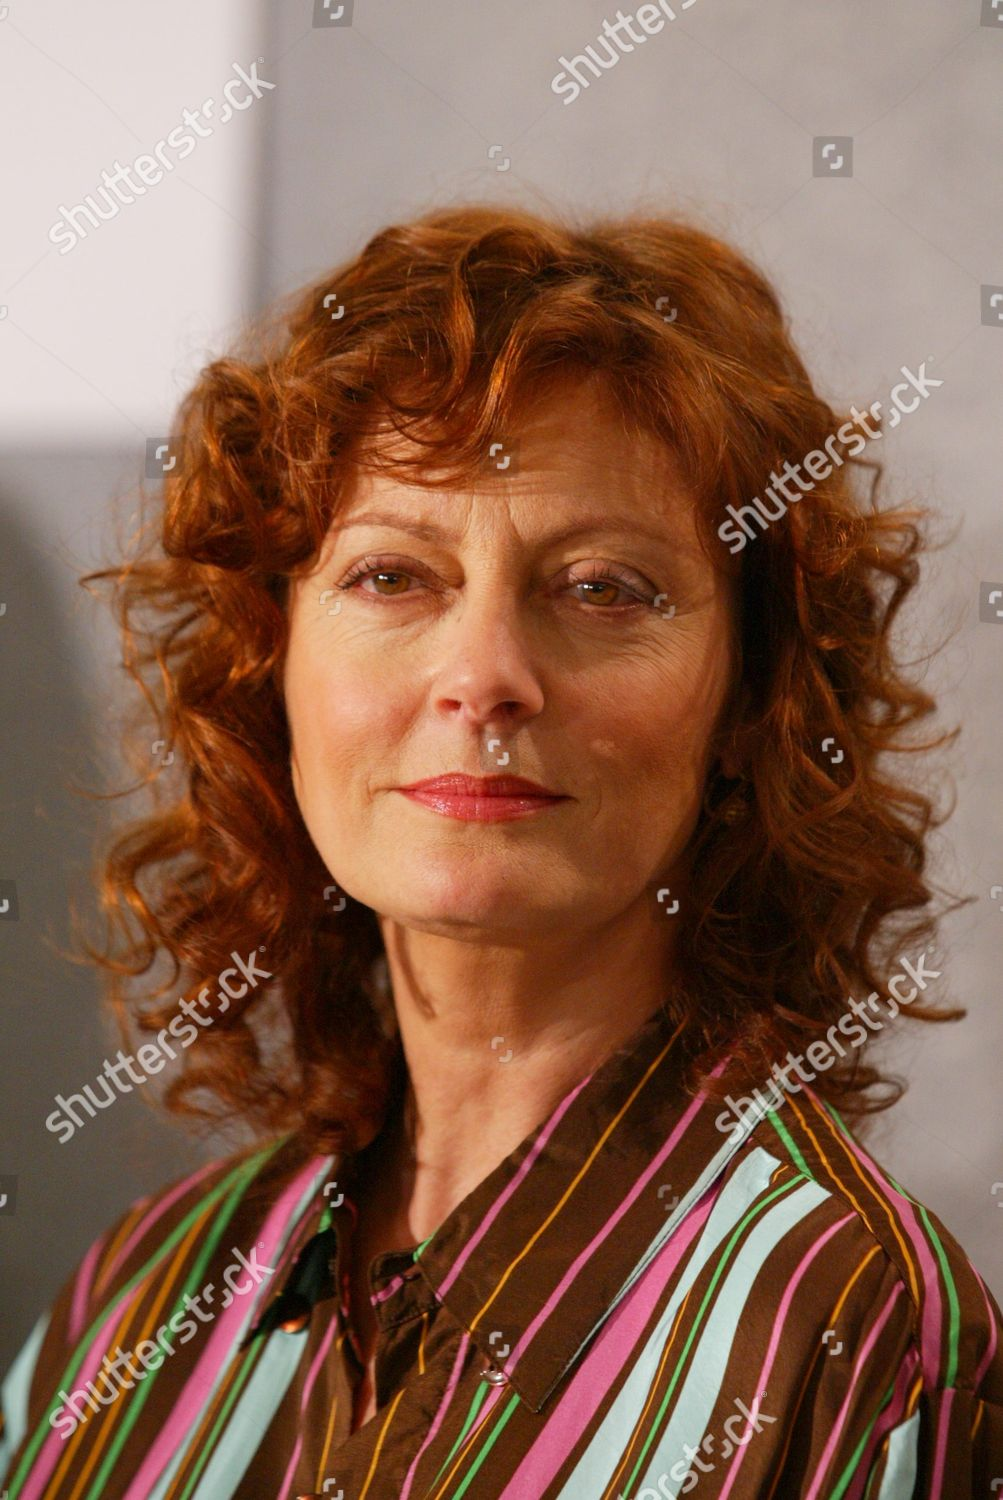 d837bc697b Susan Sarandon Editorial Stock Photo - Stock Image | Shutterstock